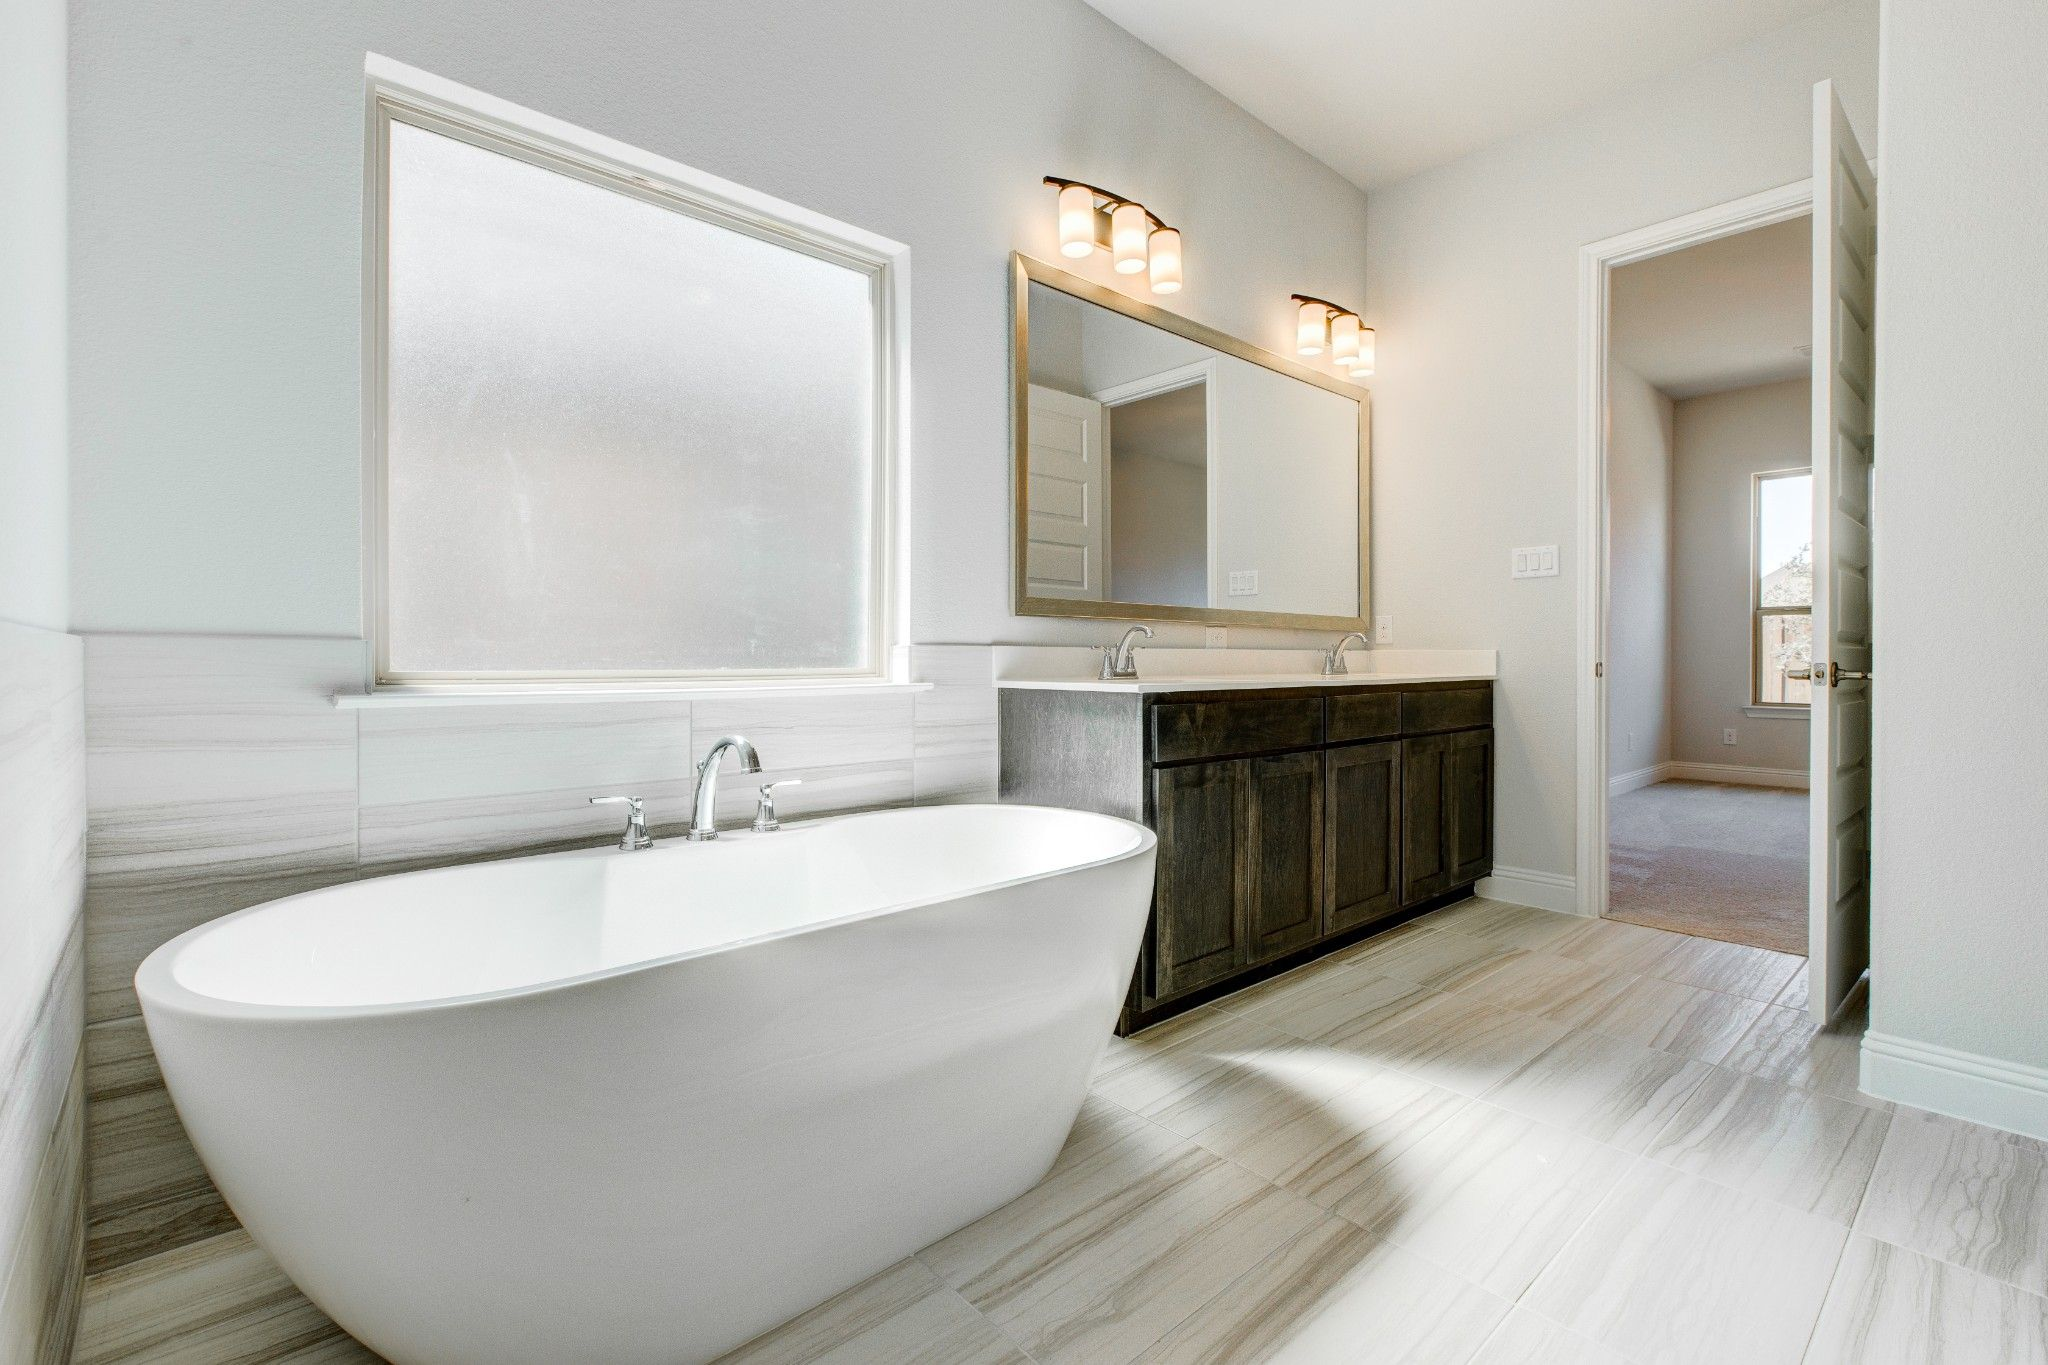 Bathroom featured in the Trinity JS By Sandlin Homes  in Fort Worth, TX